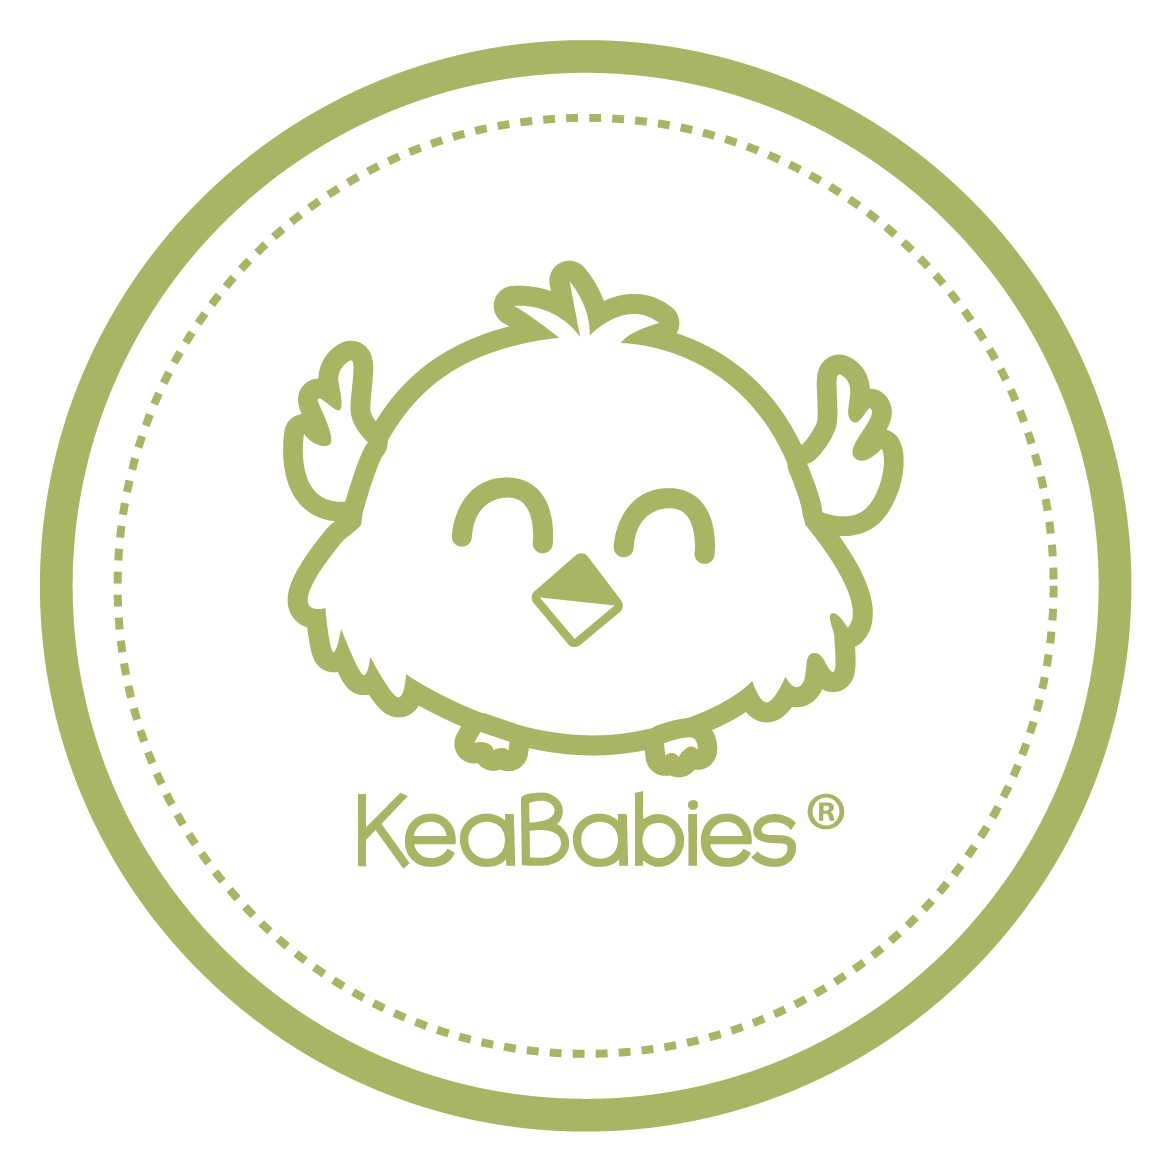 KeaBabies  coupons and KeaBabies promo codes are at RebateCodes